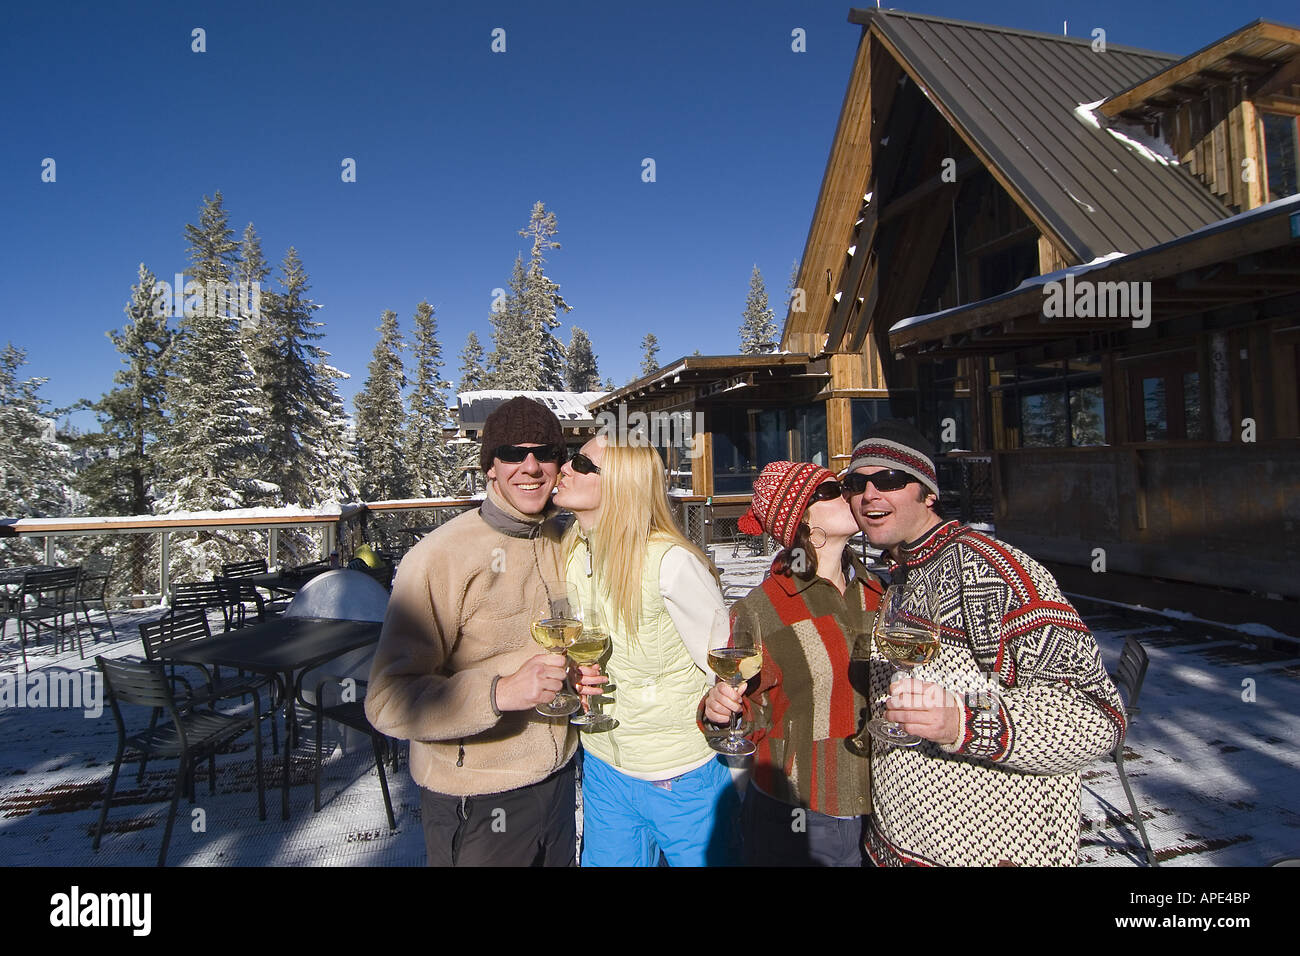 two couples kissing on the deck of a ski lodge on a sunny day in